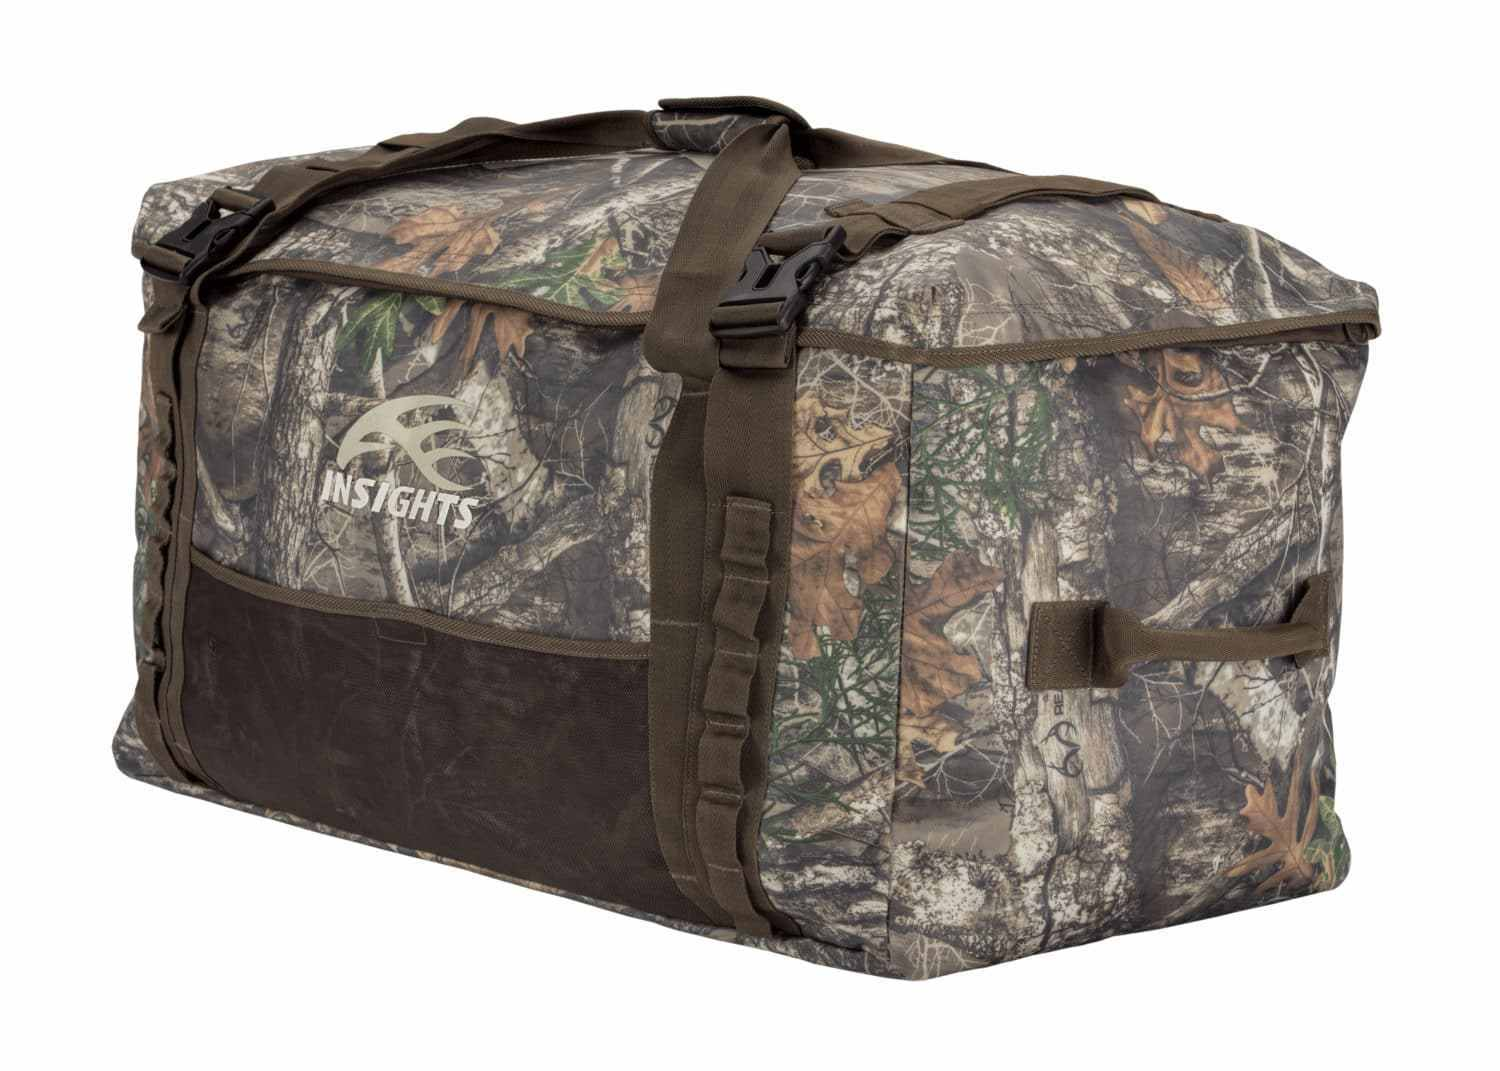 Insights Hunting The Traveler XXL Gear Bag